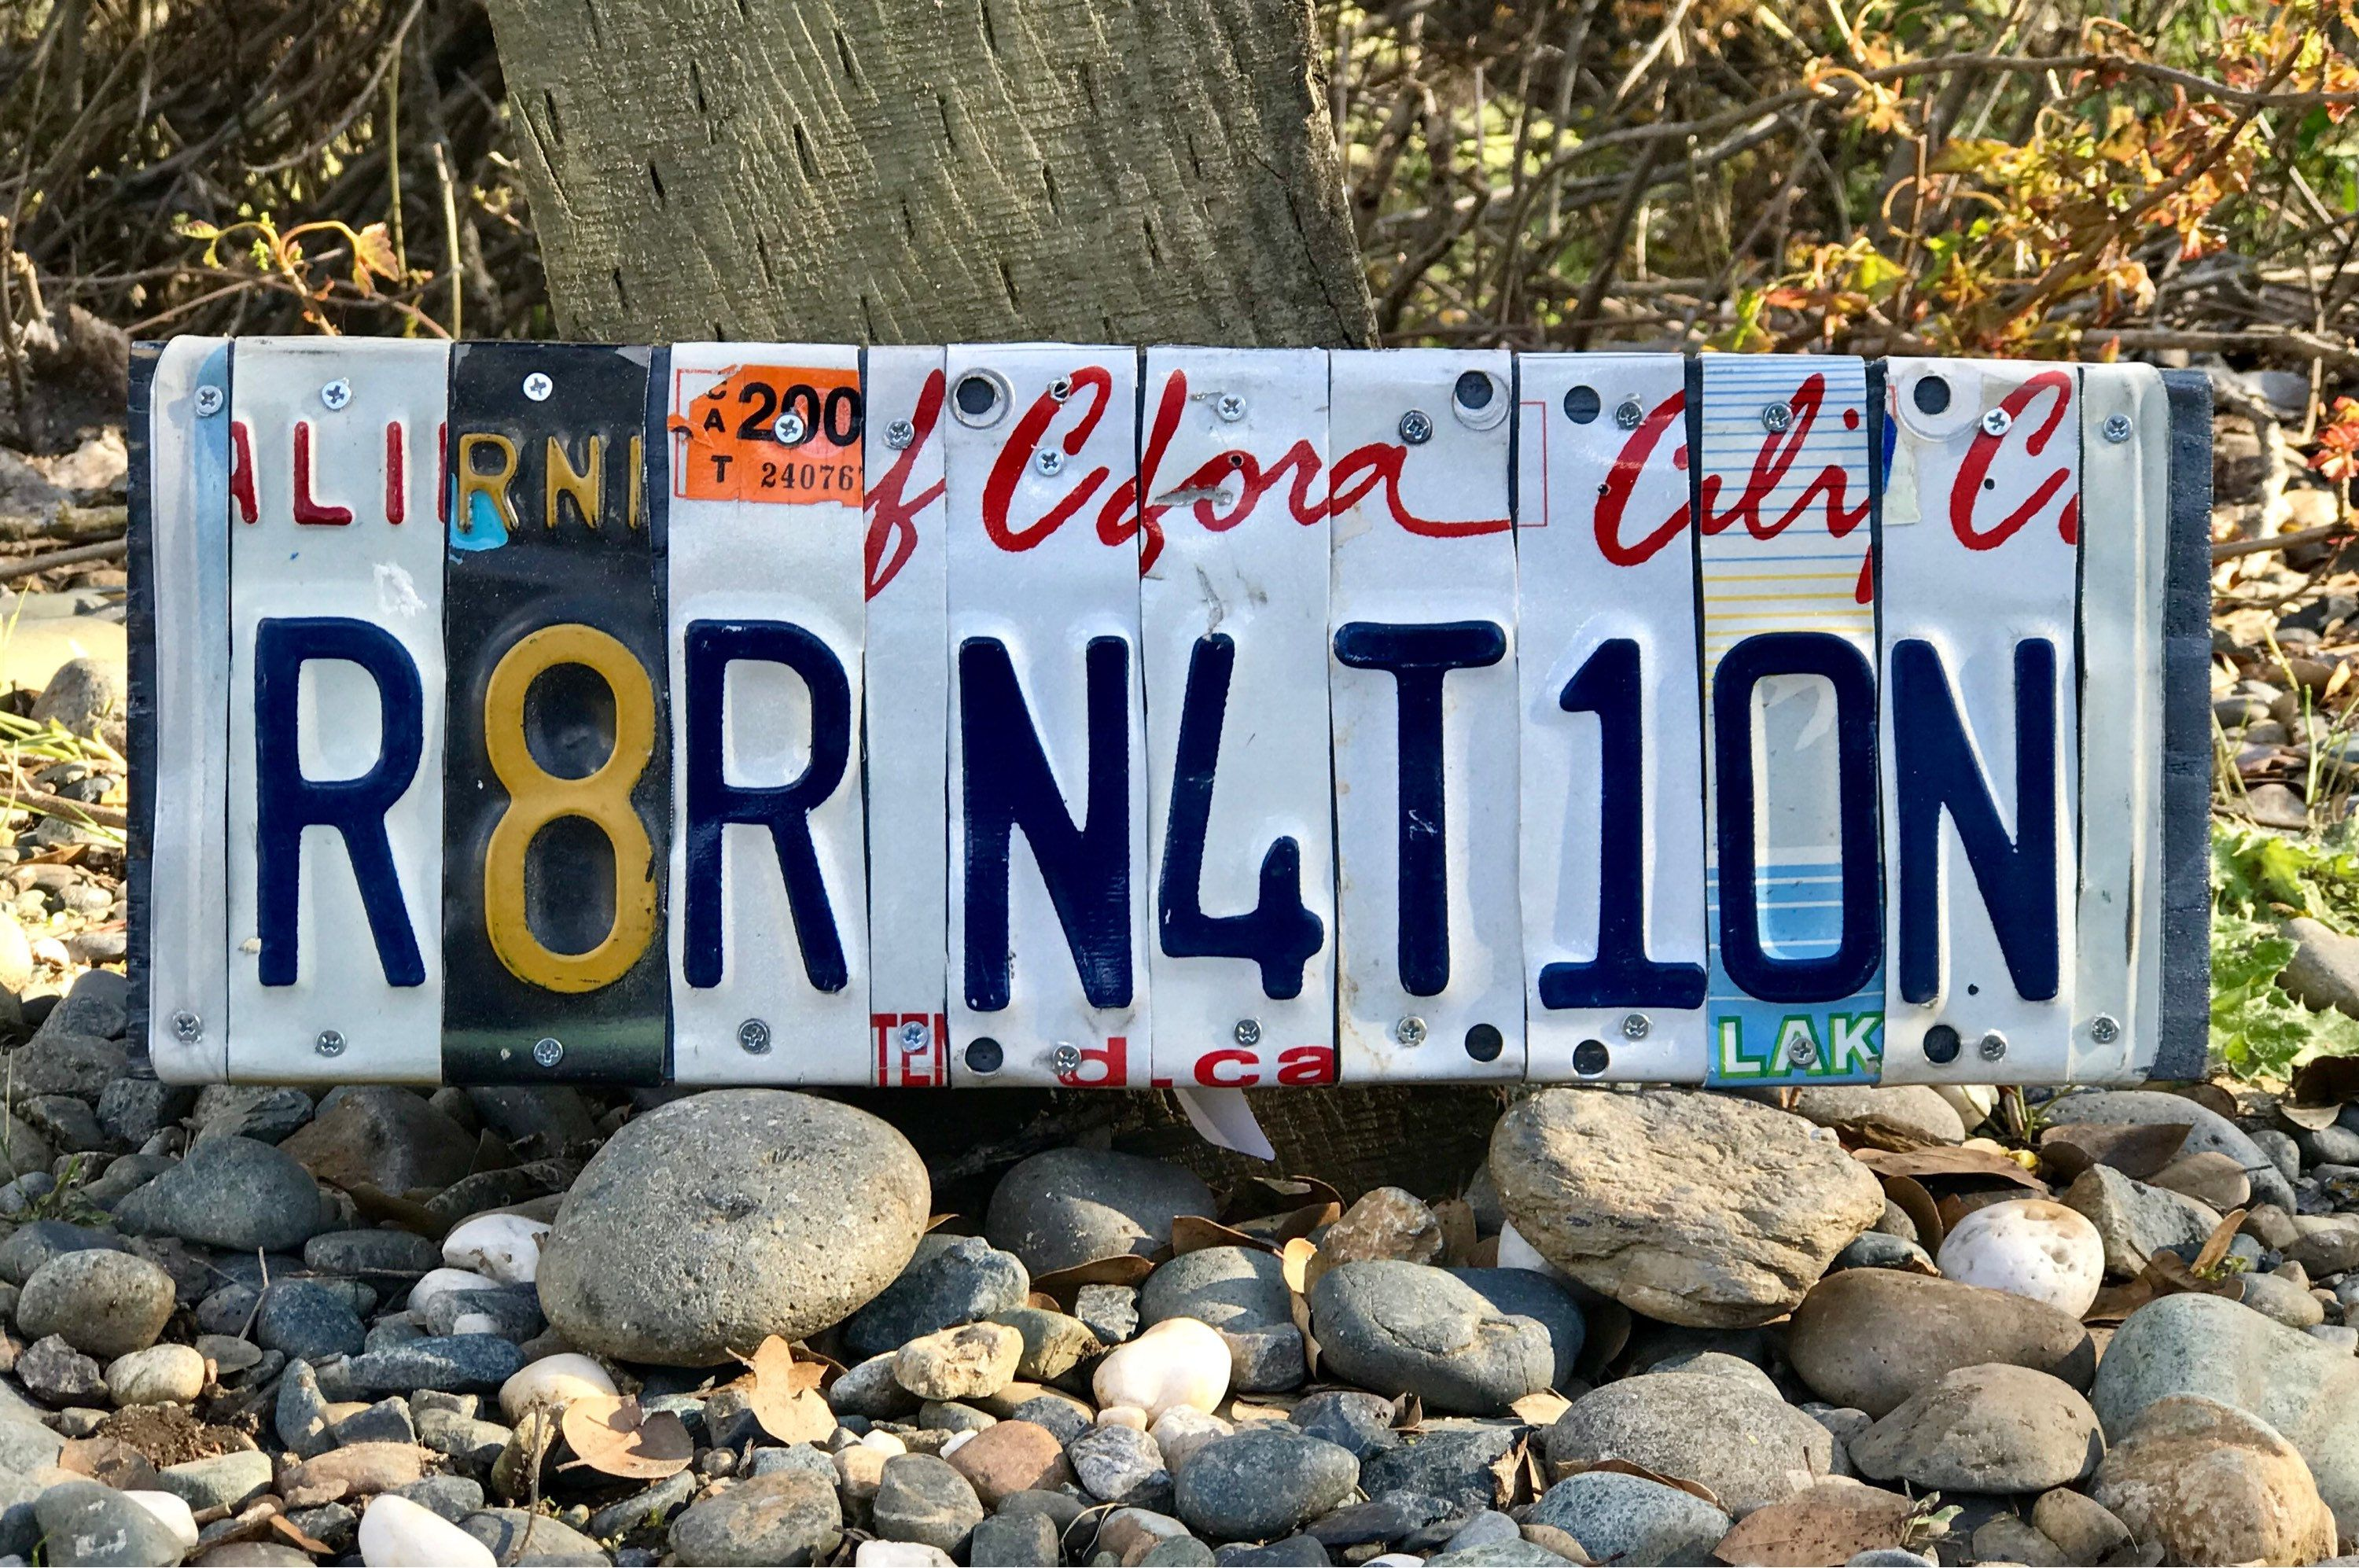 Raiders Nation Sign Livense Plate Art Football Gift Raiders Fan Gift By Heavenonearthelement On Etsy Raider Nation Raiders Sign Earth Elements